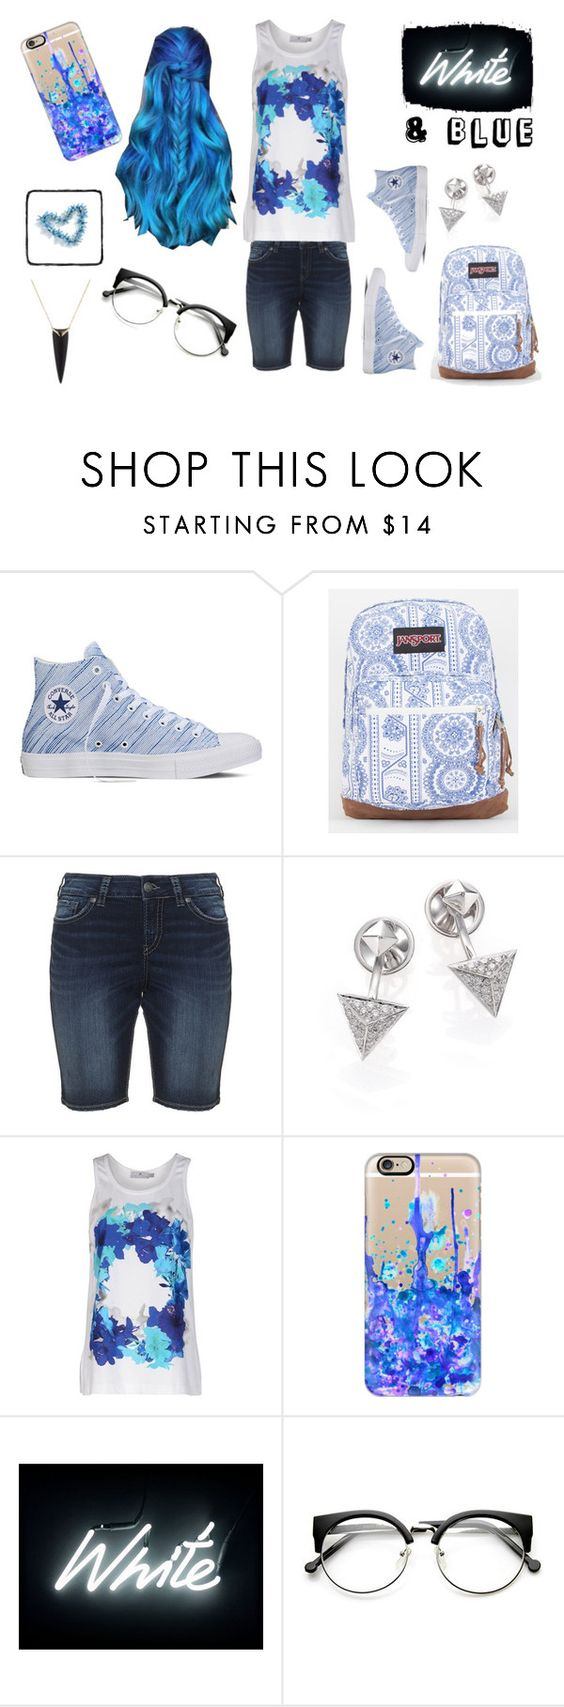 """""""Blue & White"""" by geeklychic1417 ❤ liked on Polyvore featuring Converse, JanSport, Marli, adidas, Casetify, Seletti and Alexis Bittar"""